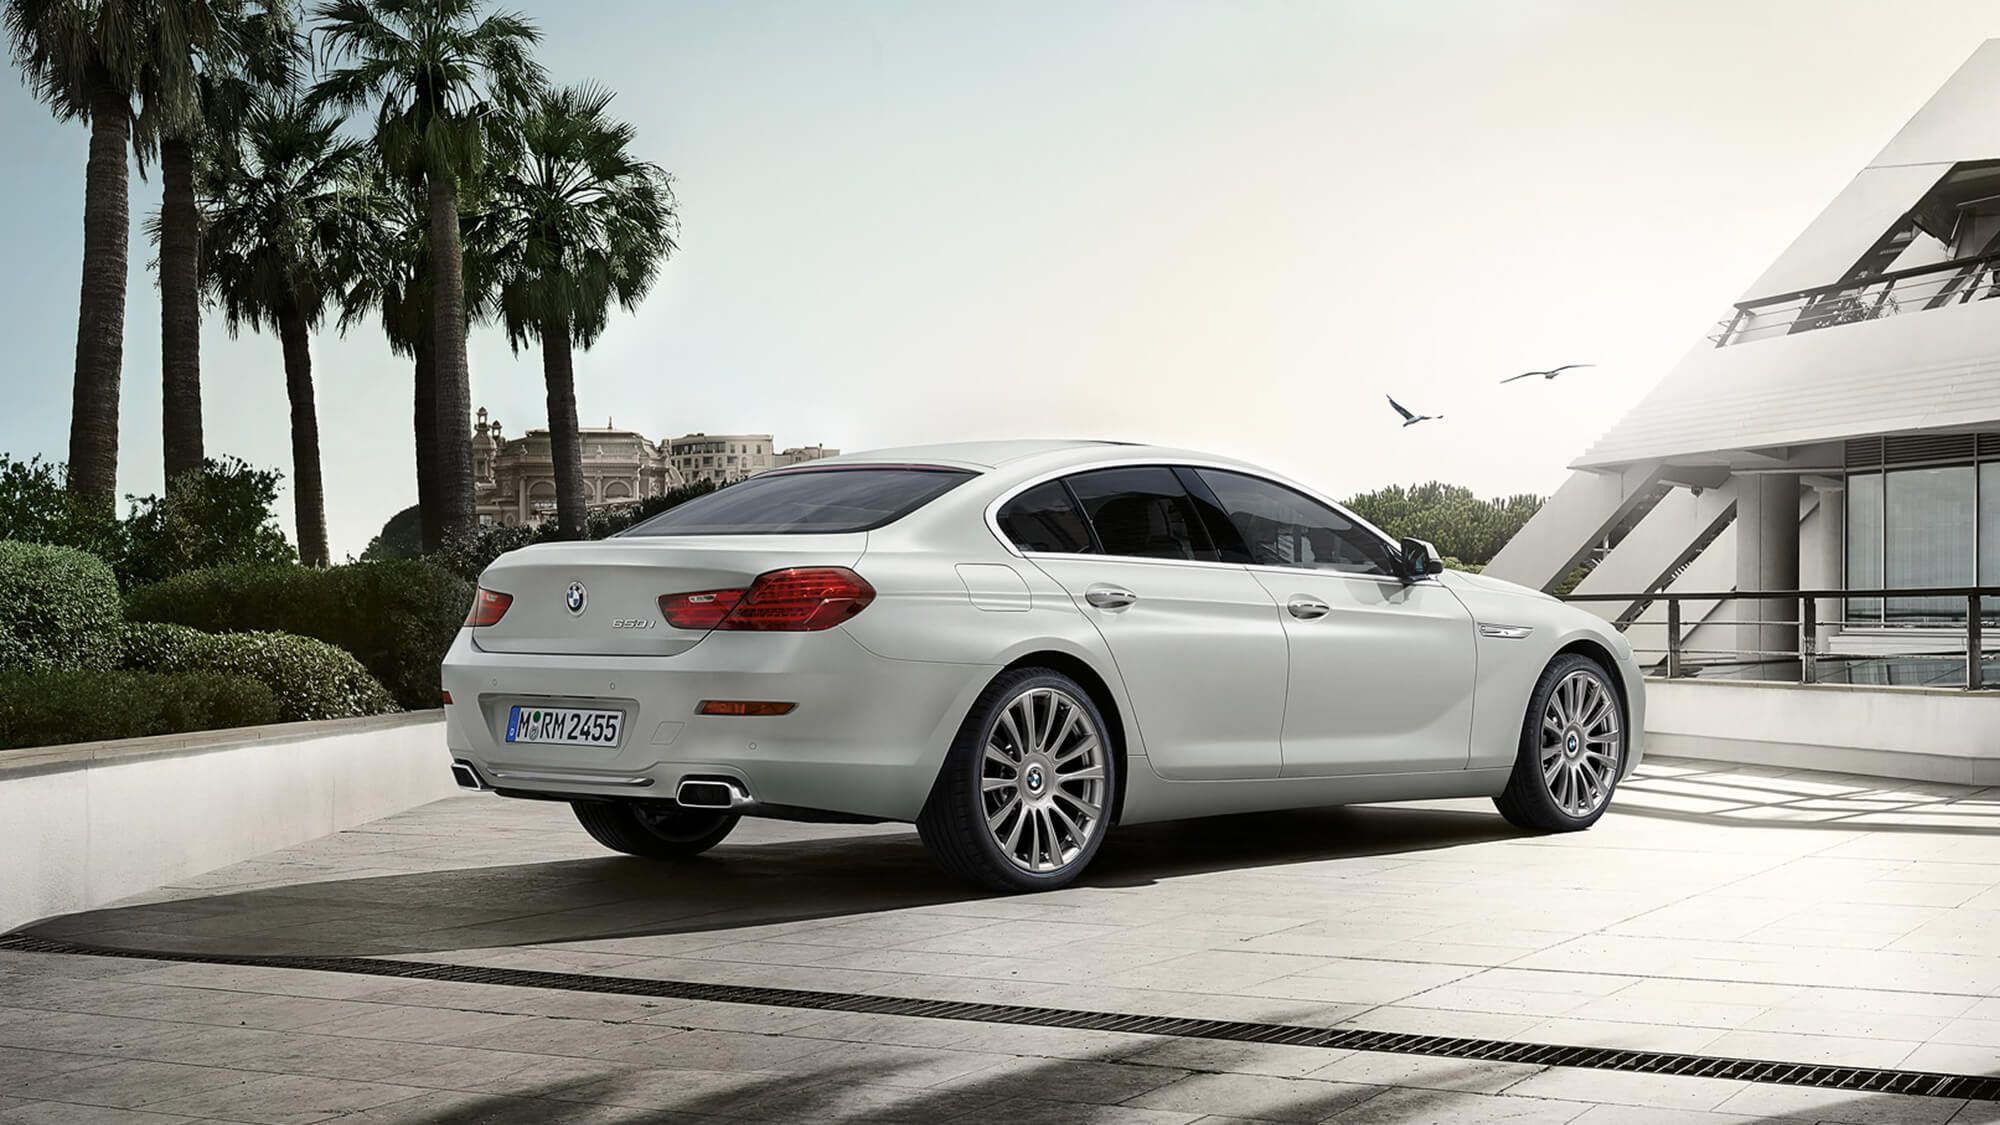 new bmw 6 series gran coupe for sale on finance part. Black Bedroom Furniture Sets. Home Design Ideas